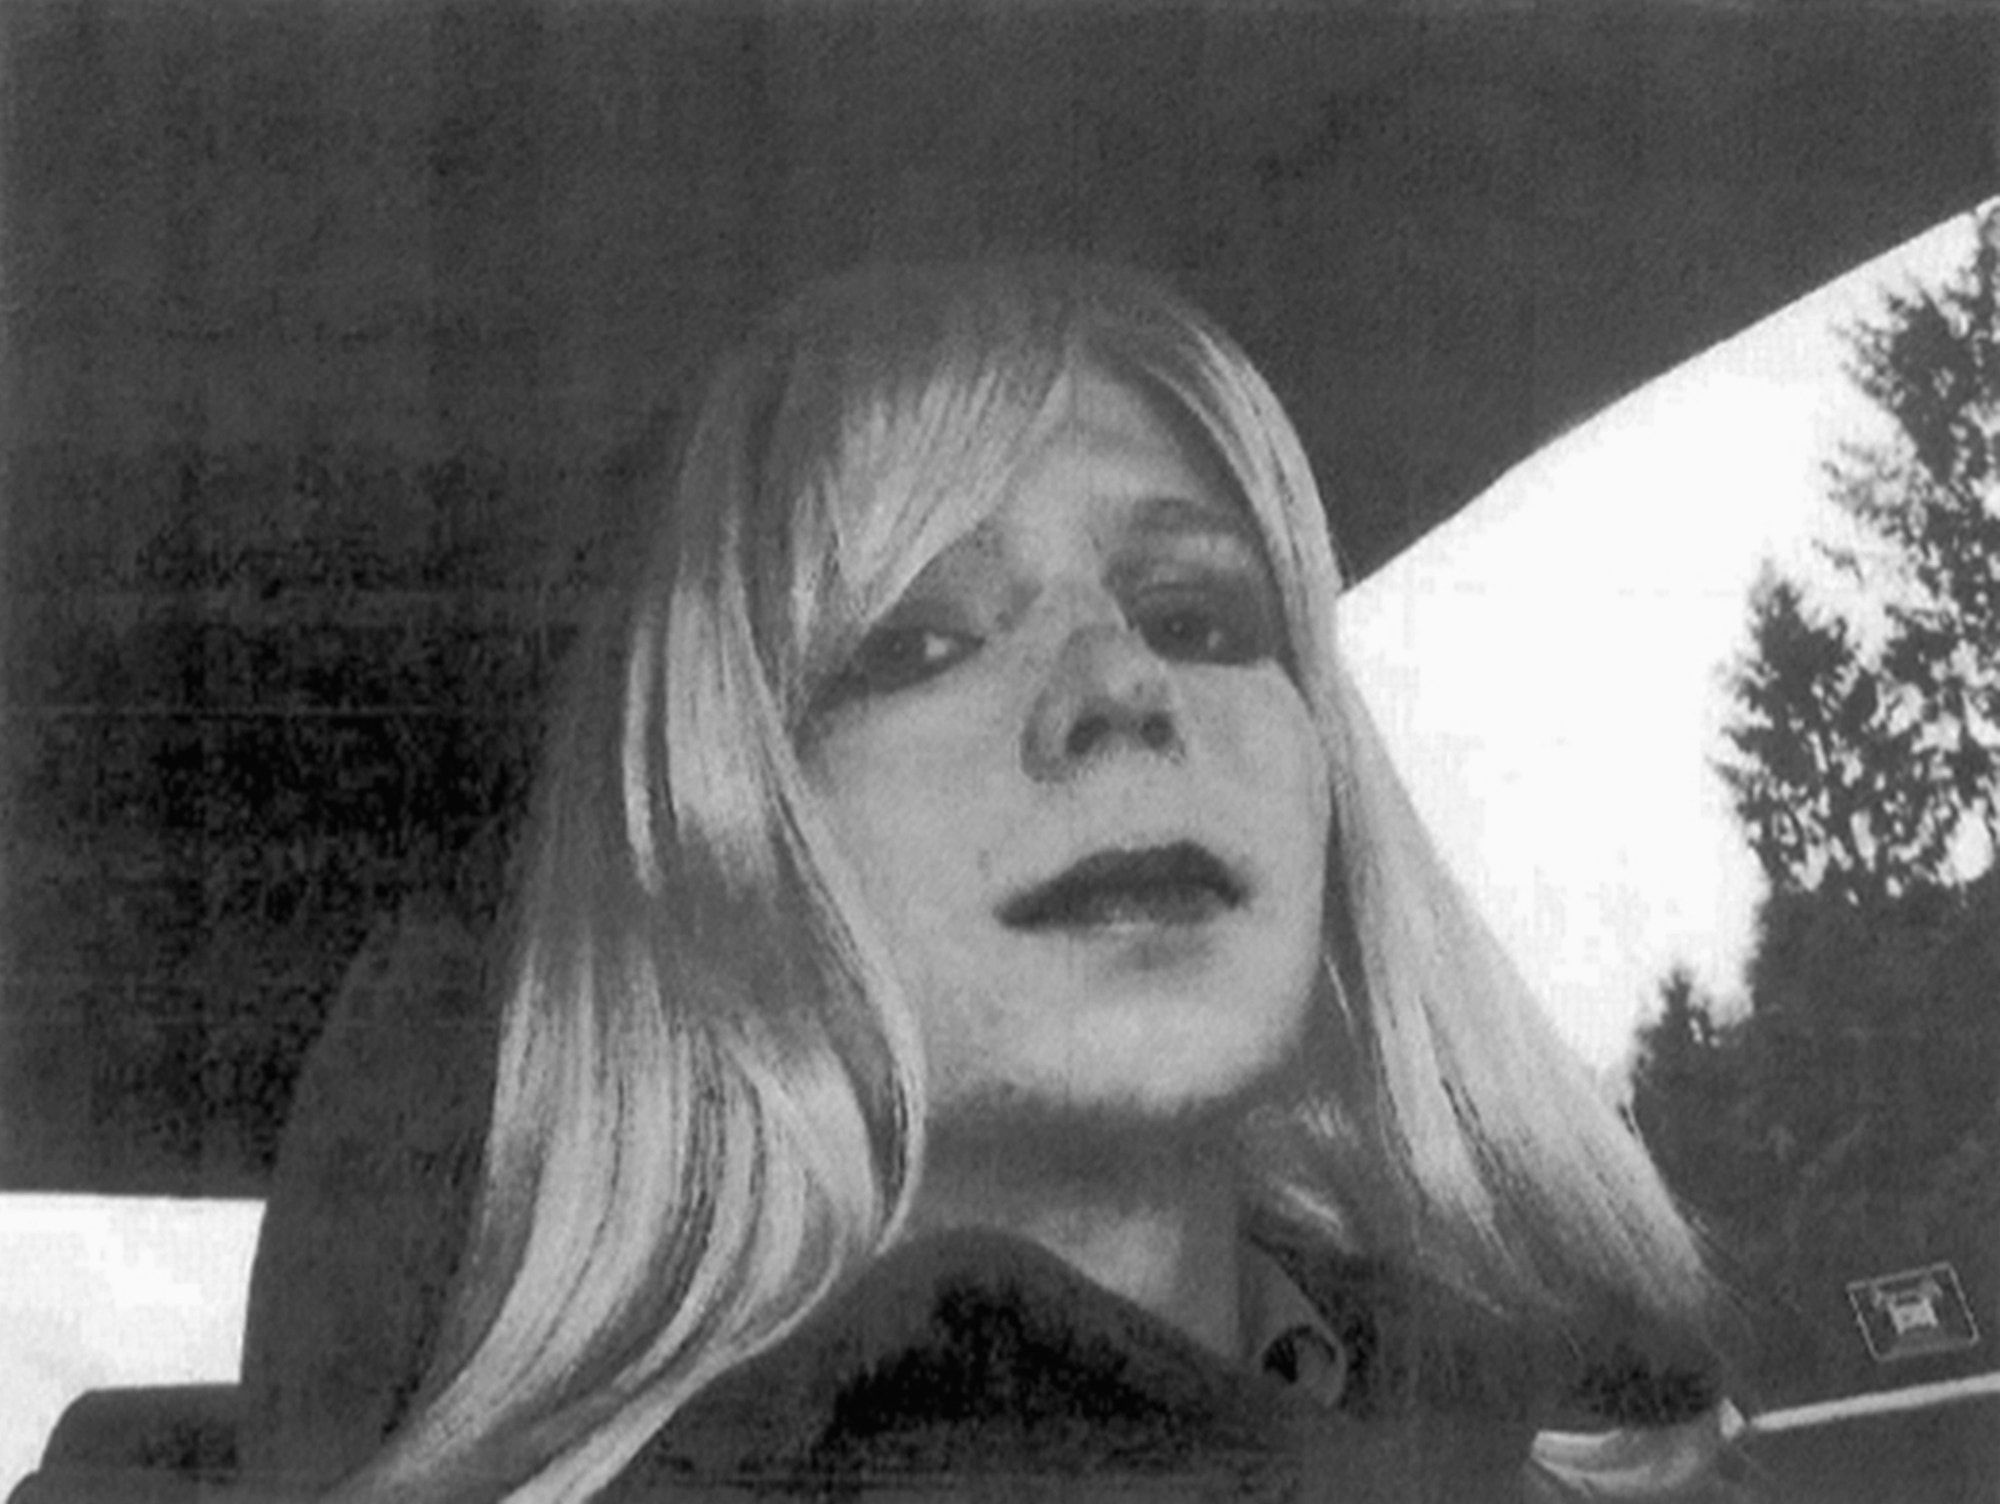 Chelsea Manning released after 7 years in military prison